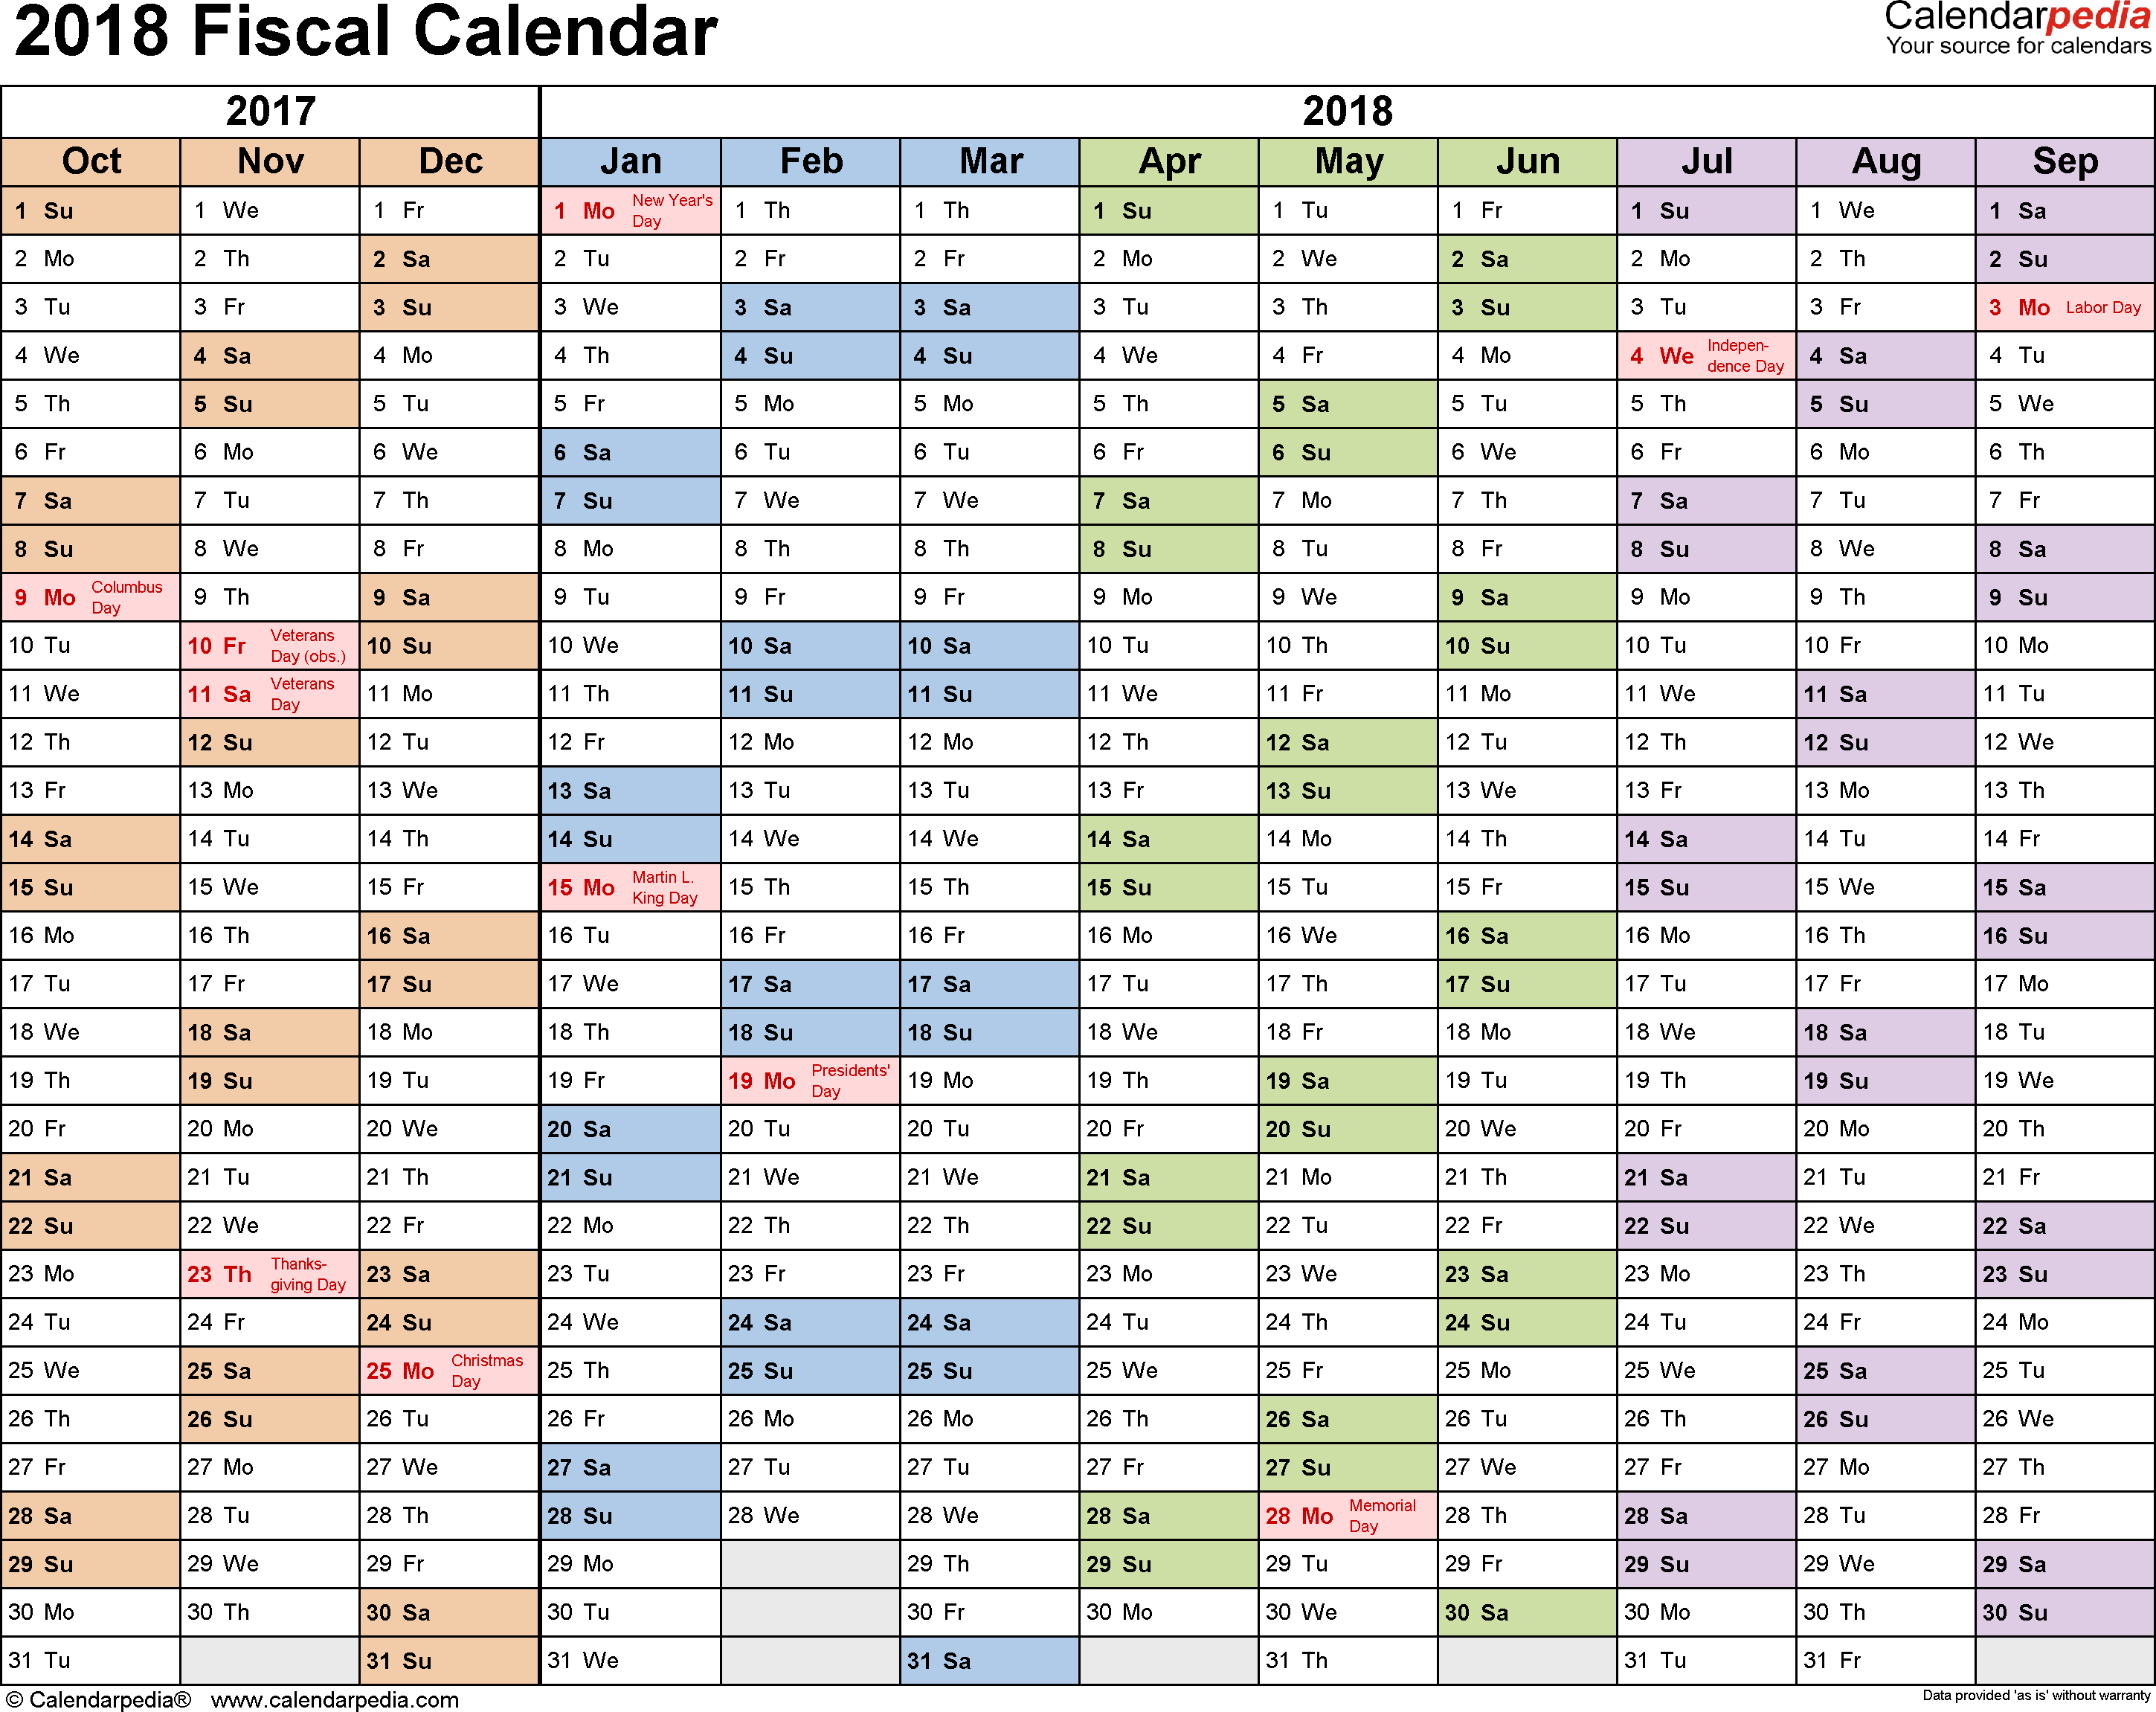 template 1 fiscal year calendar 2018 for excel landscape orientation months horizontally